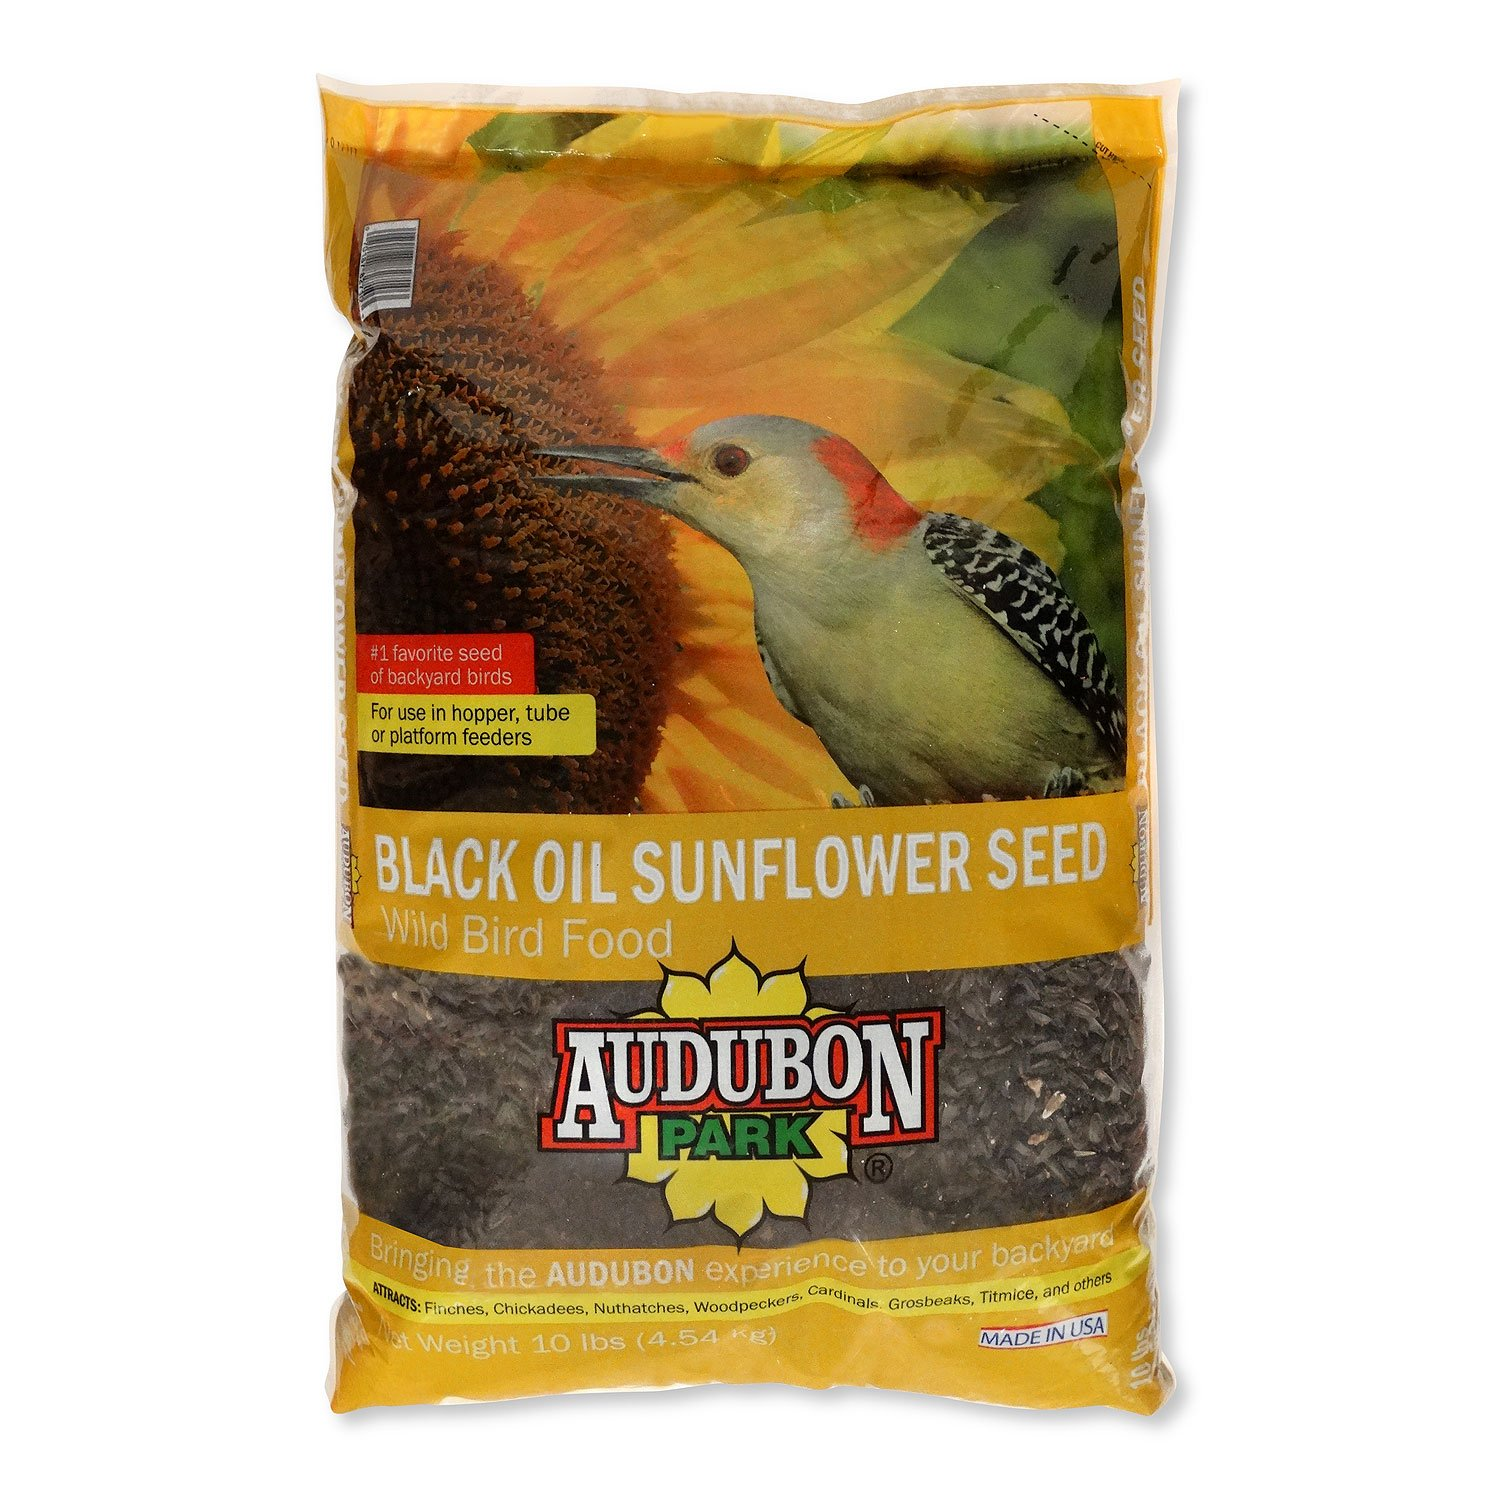 Audubon Park 12261 Black Oil Sunflower Seed Wild Bird Food